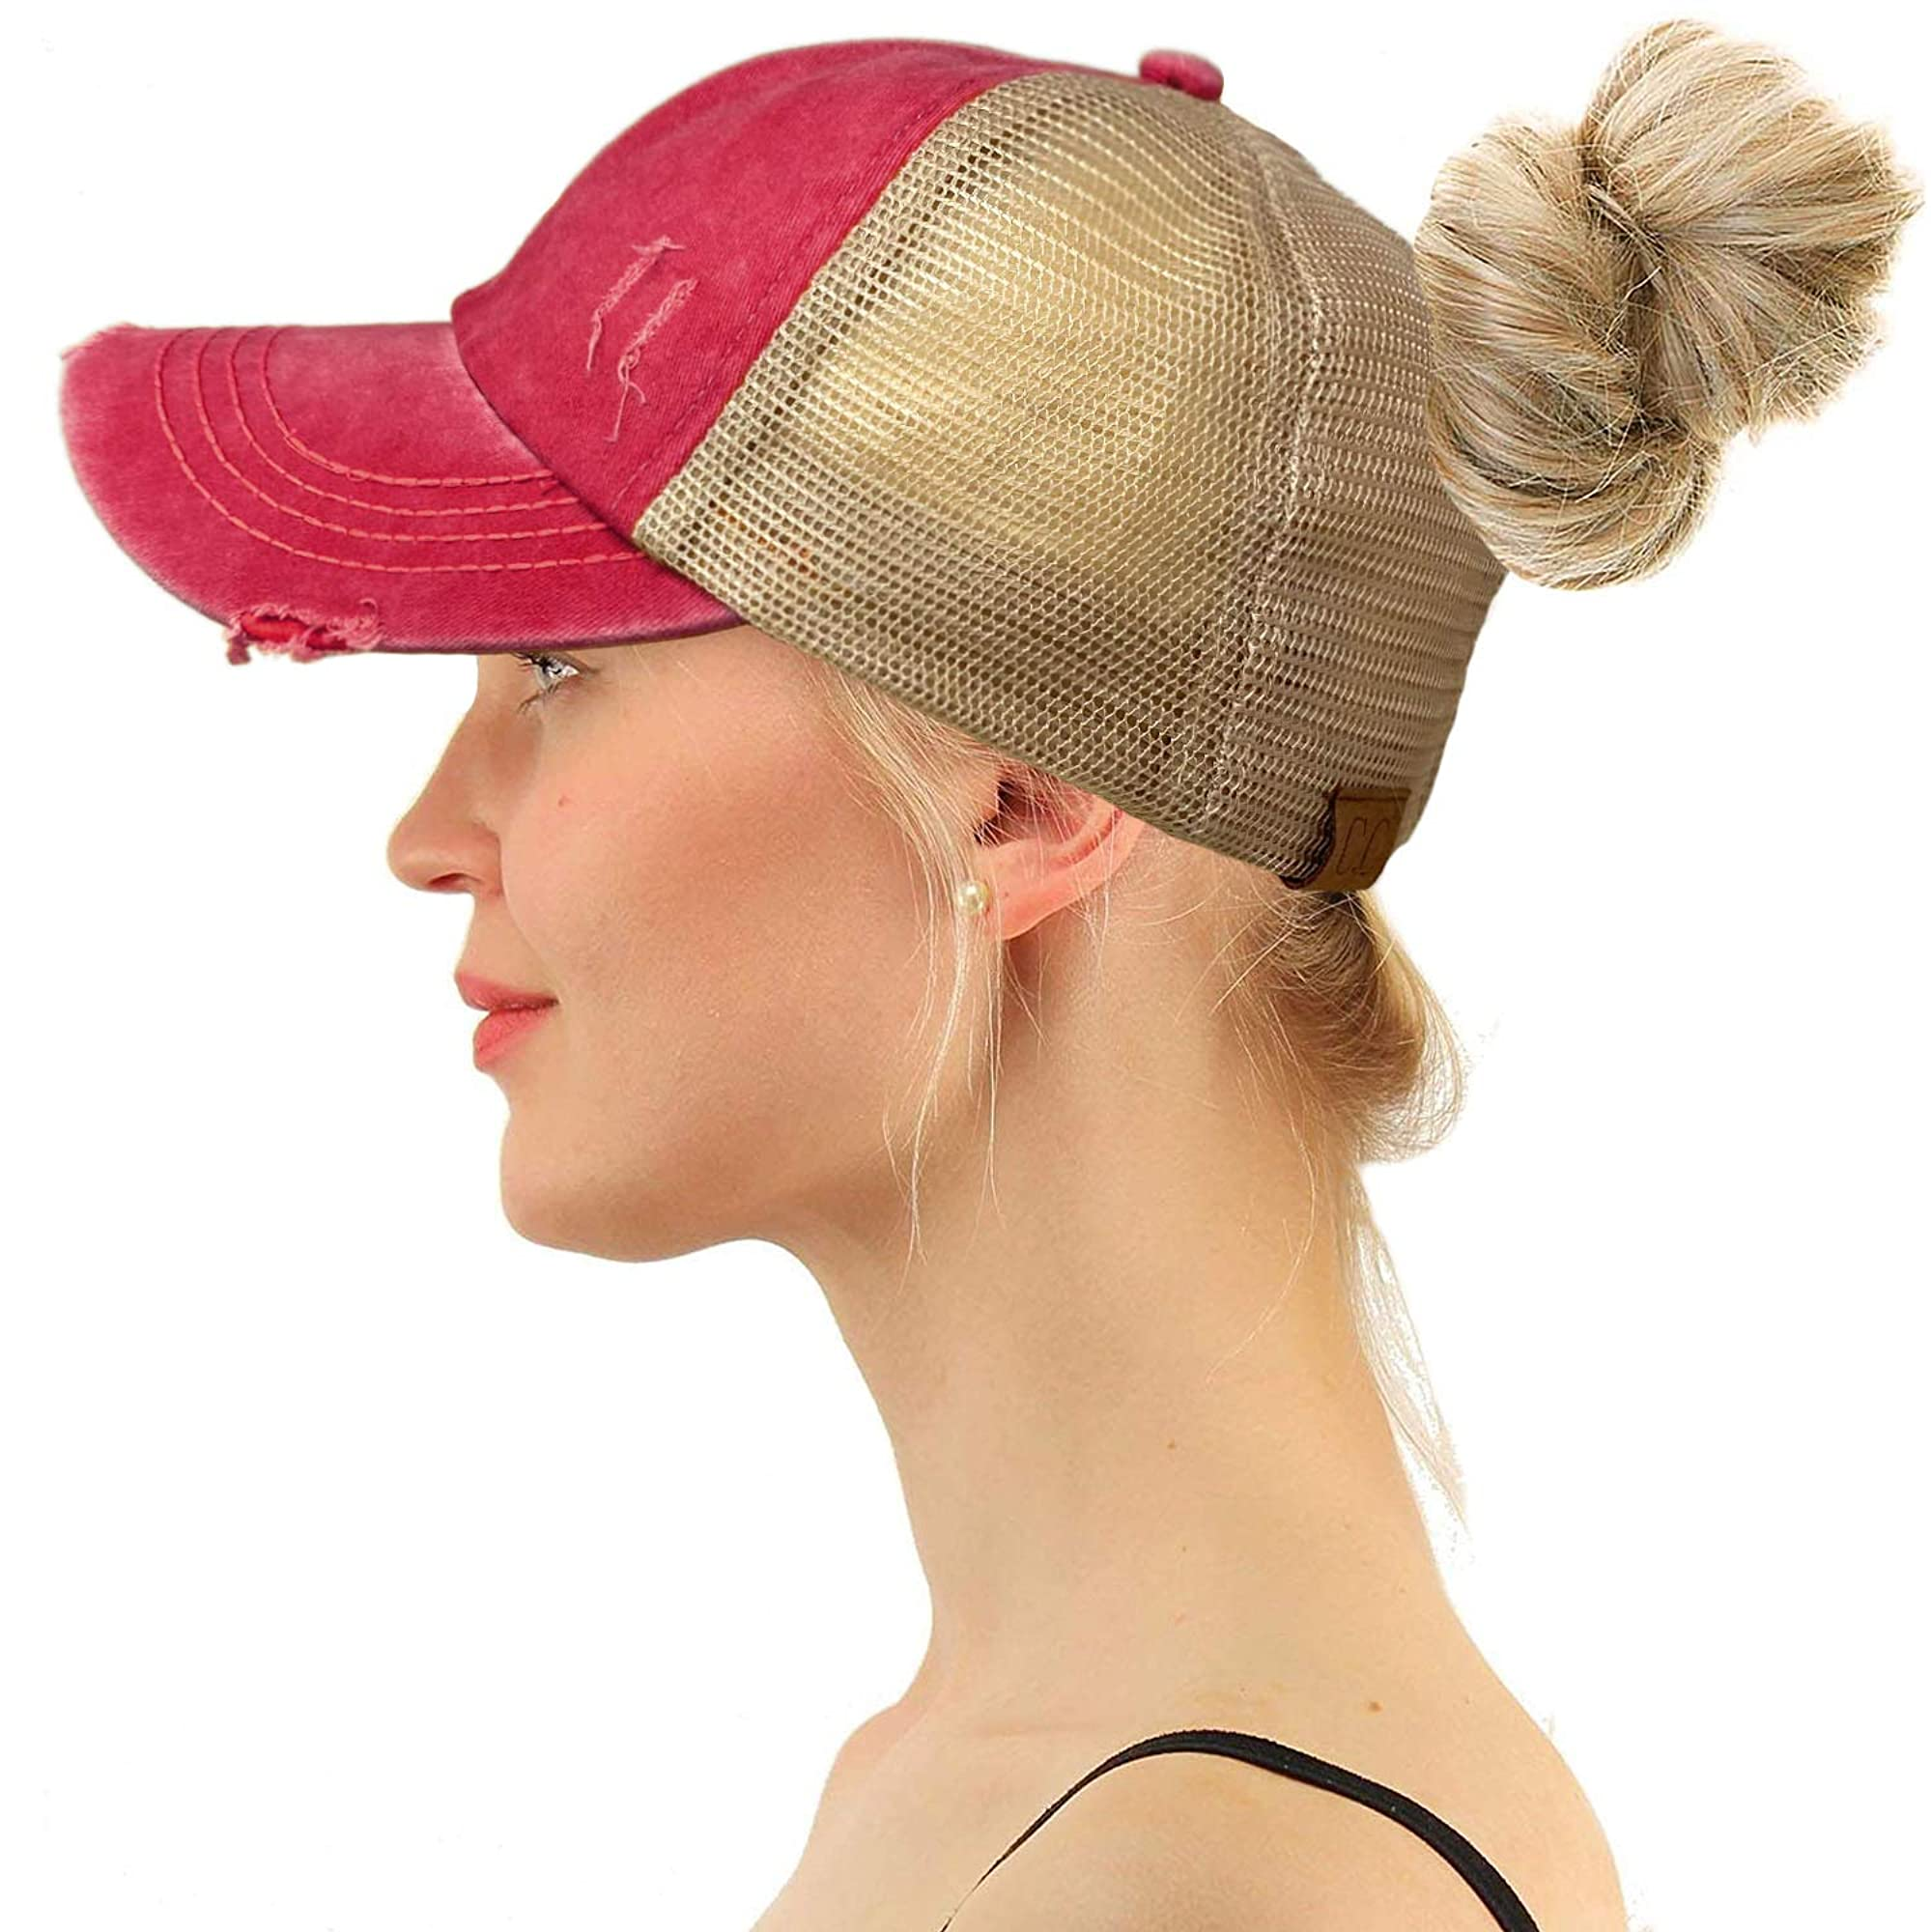 Ponytail Criss Cross Messy Hats